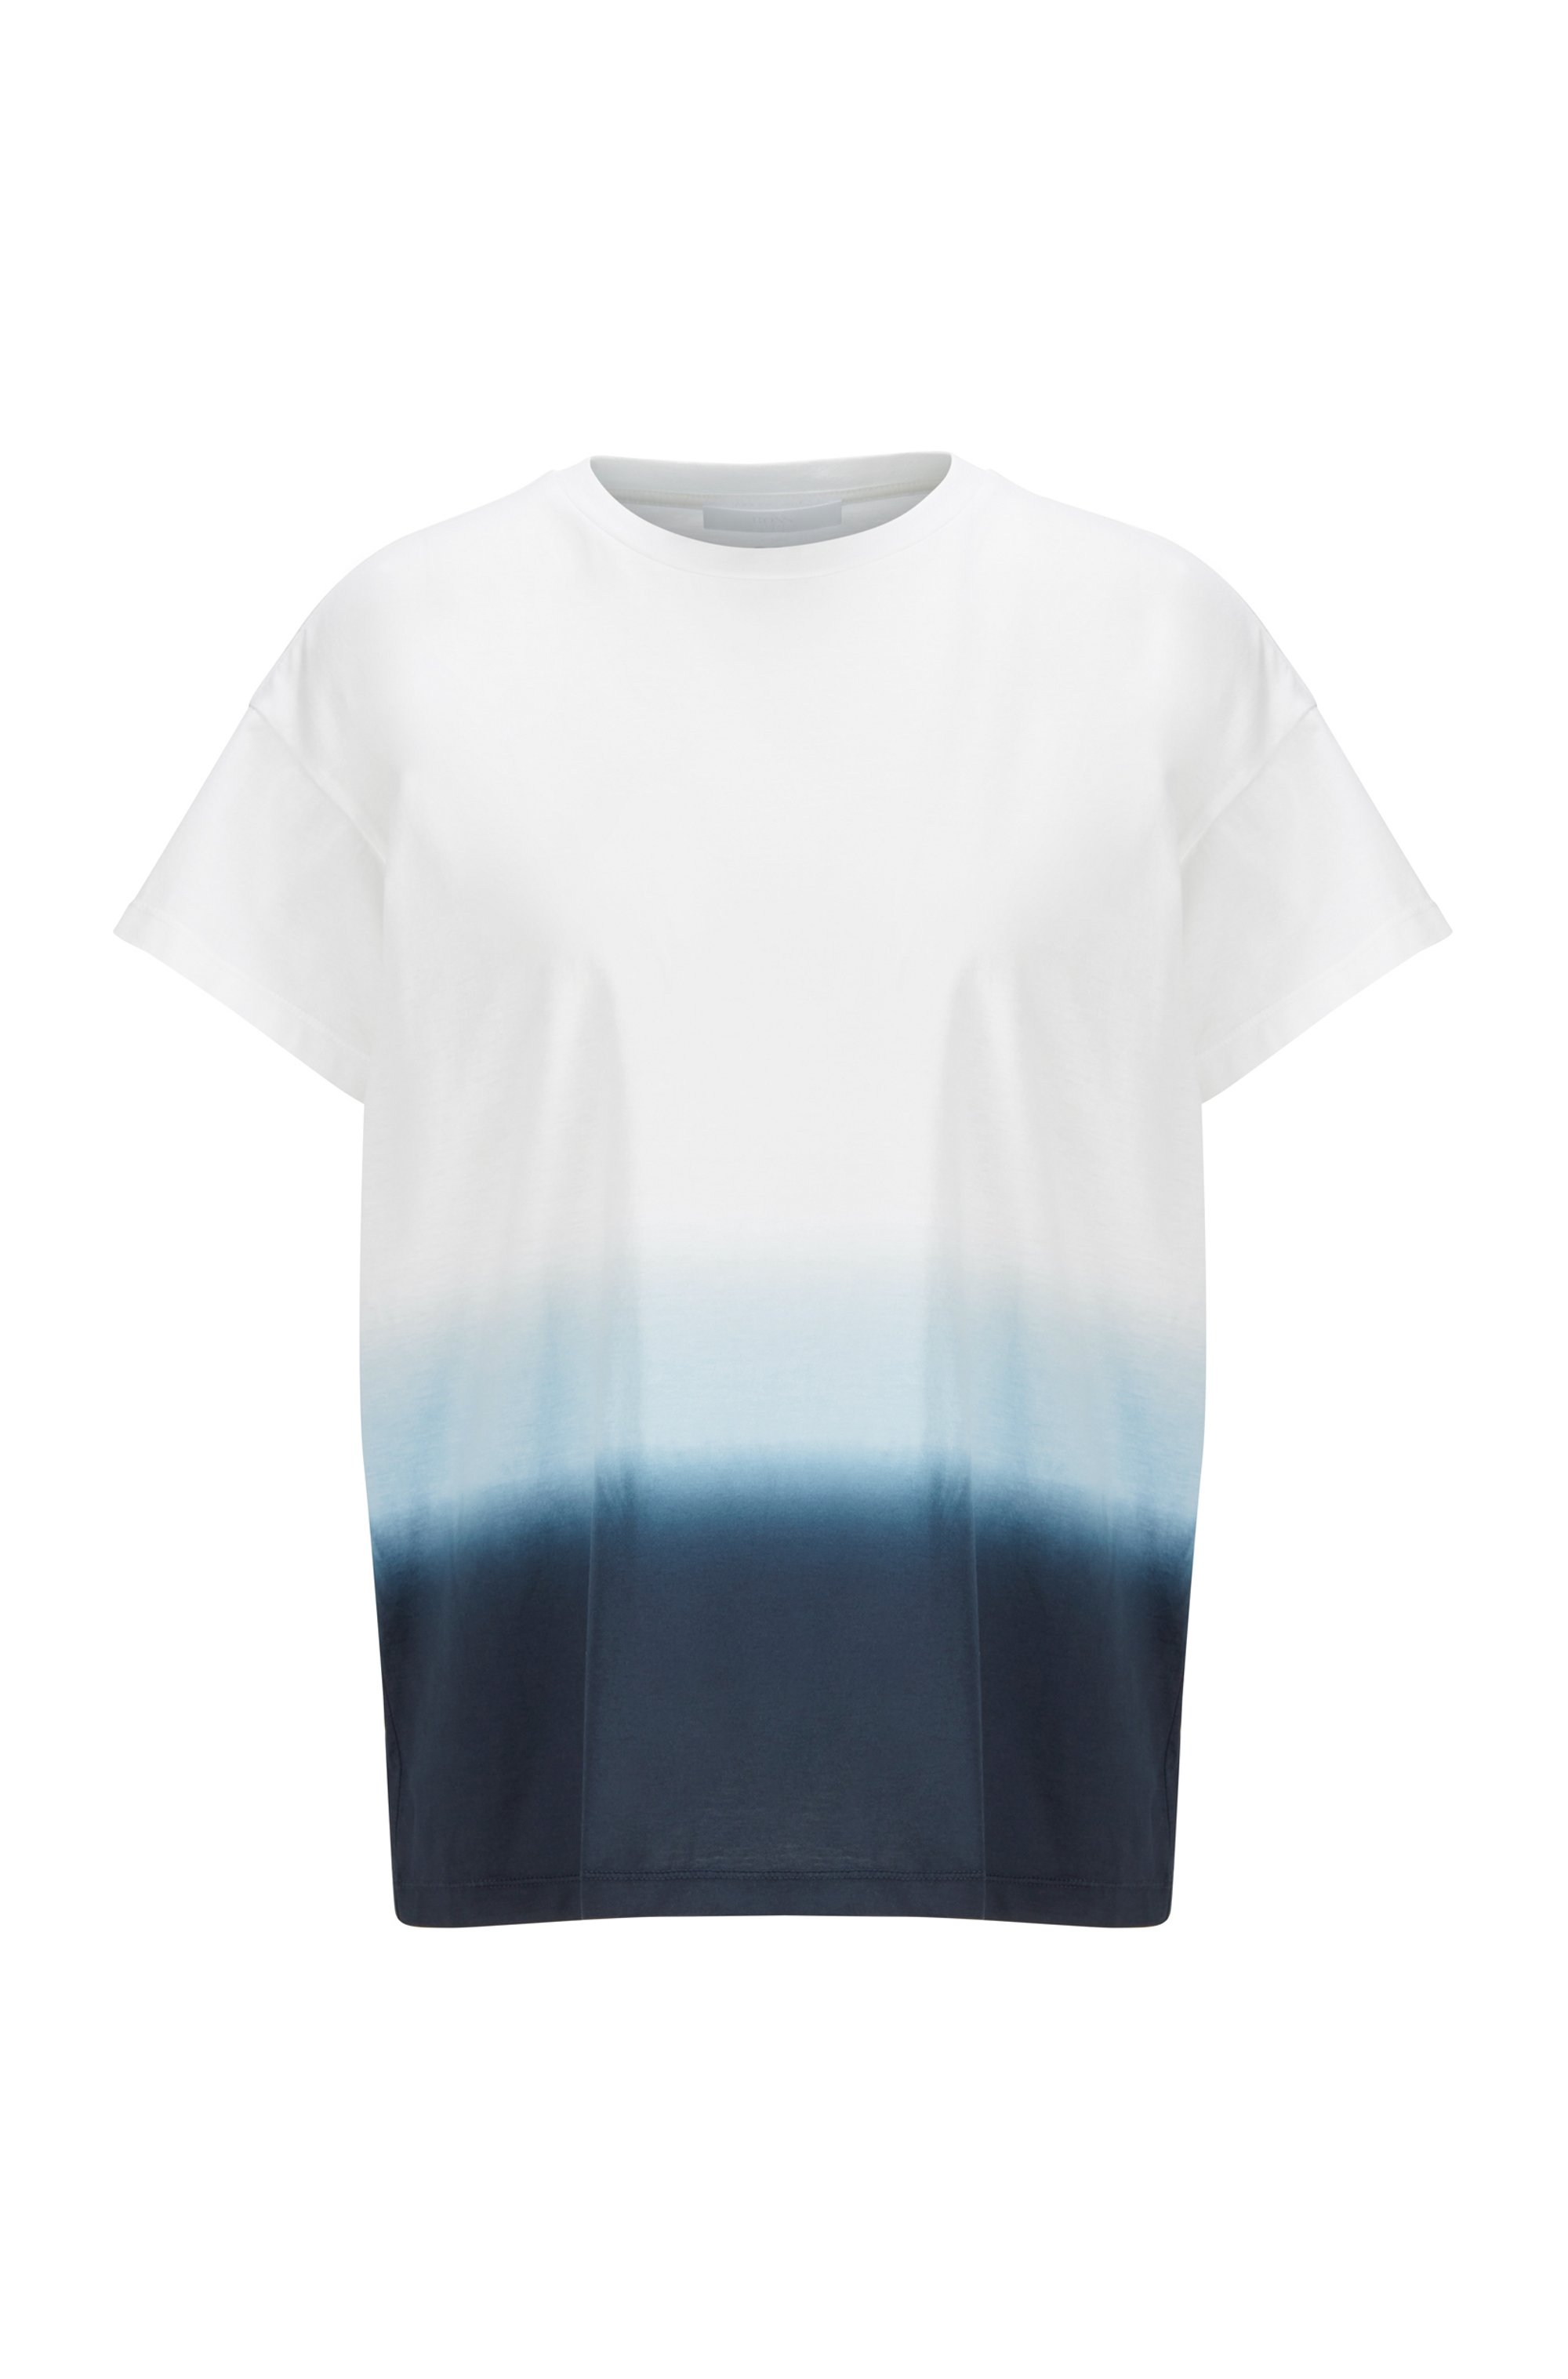 Dip-dyed relaxed-fit T-shirt in cotton jersey, Patterned